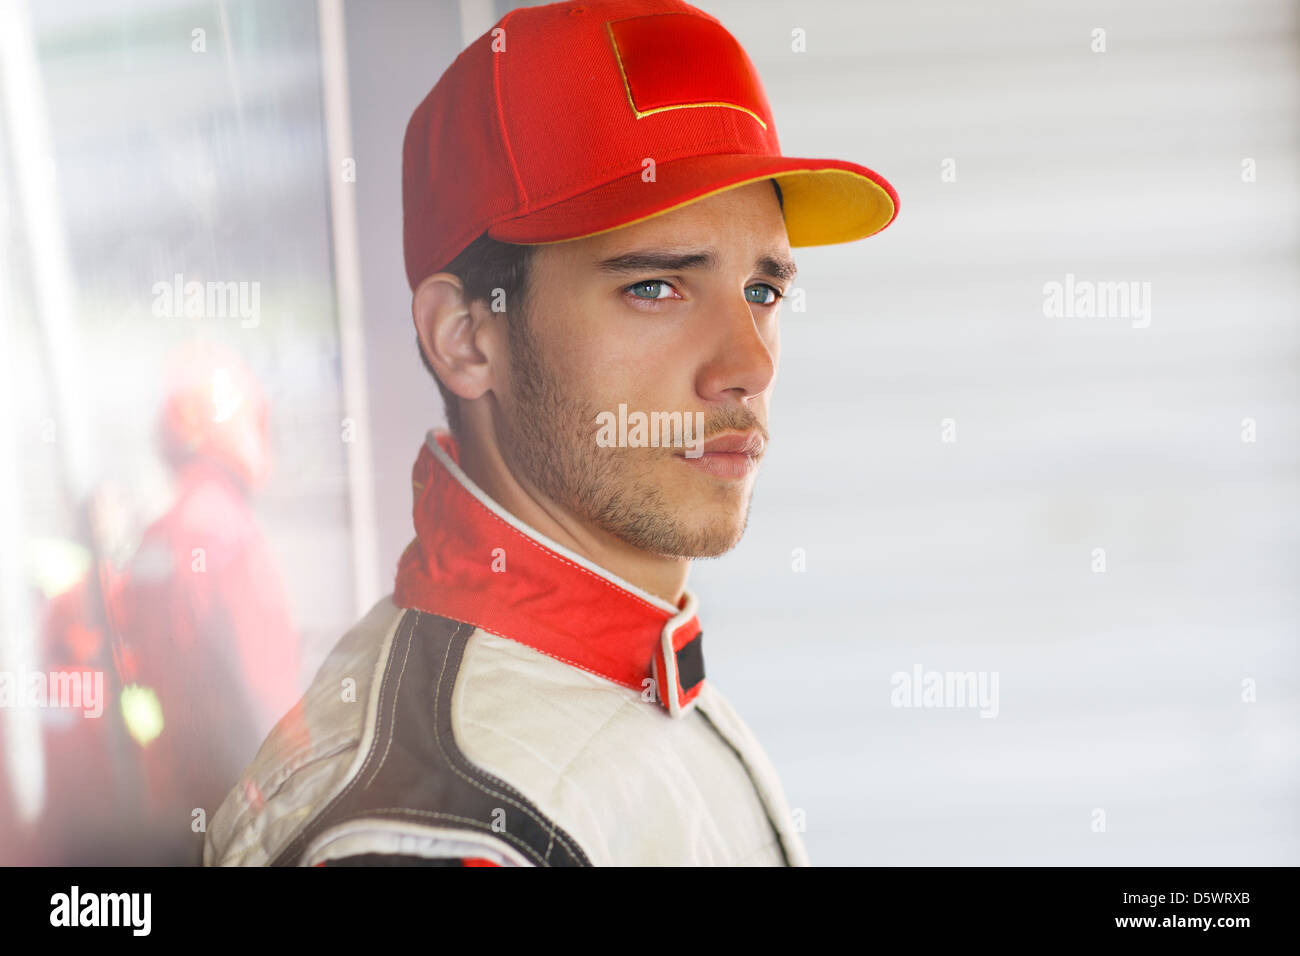 Racer standing in garage Photo Stock